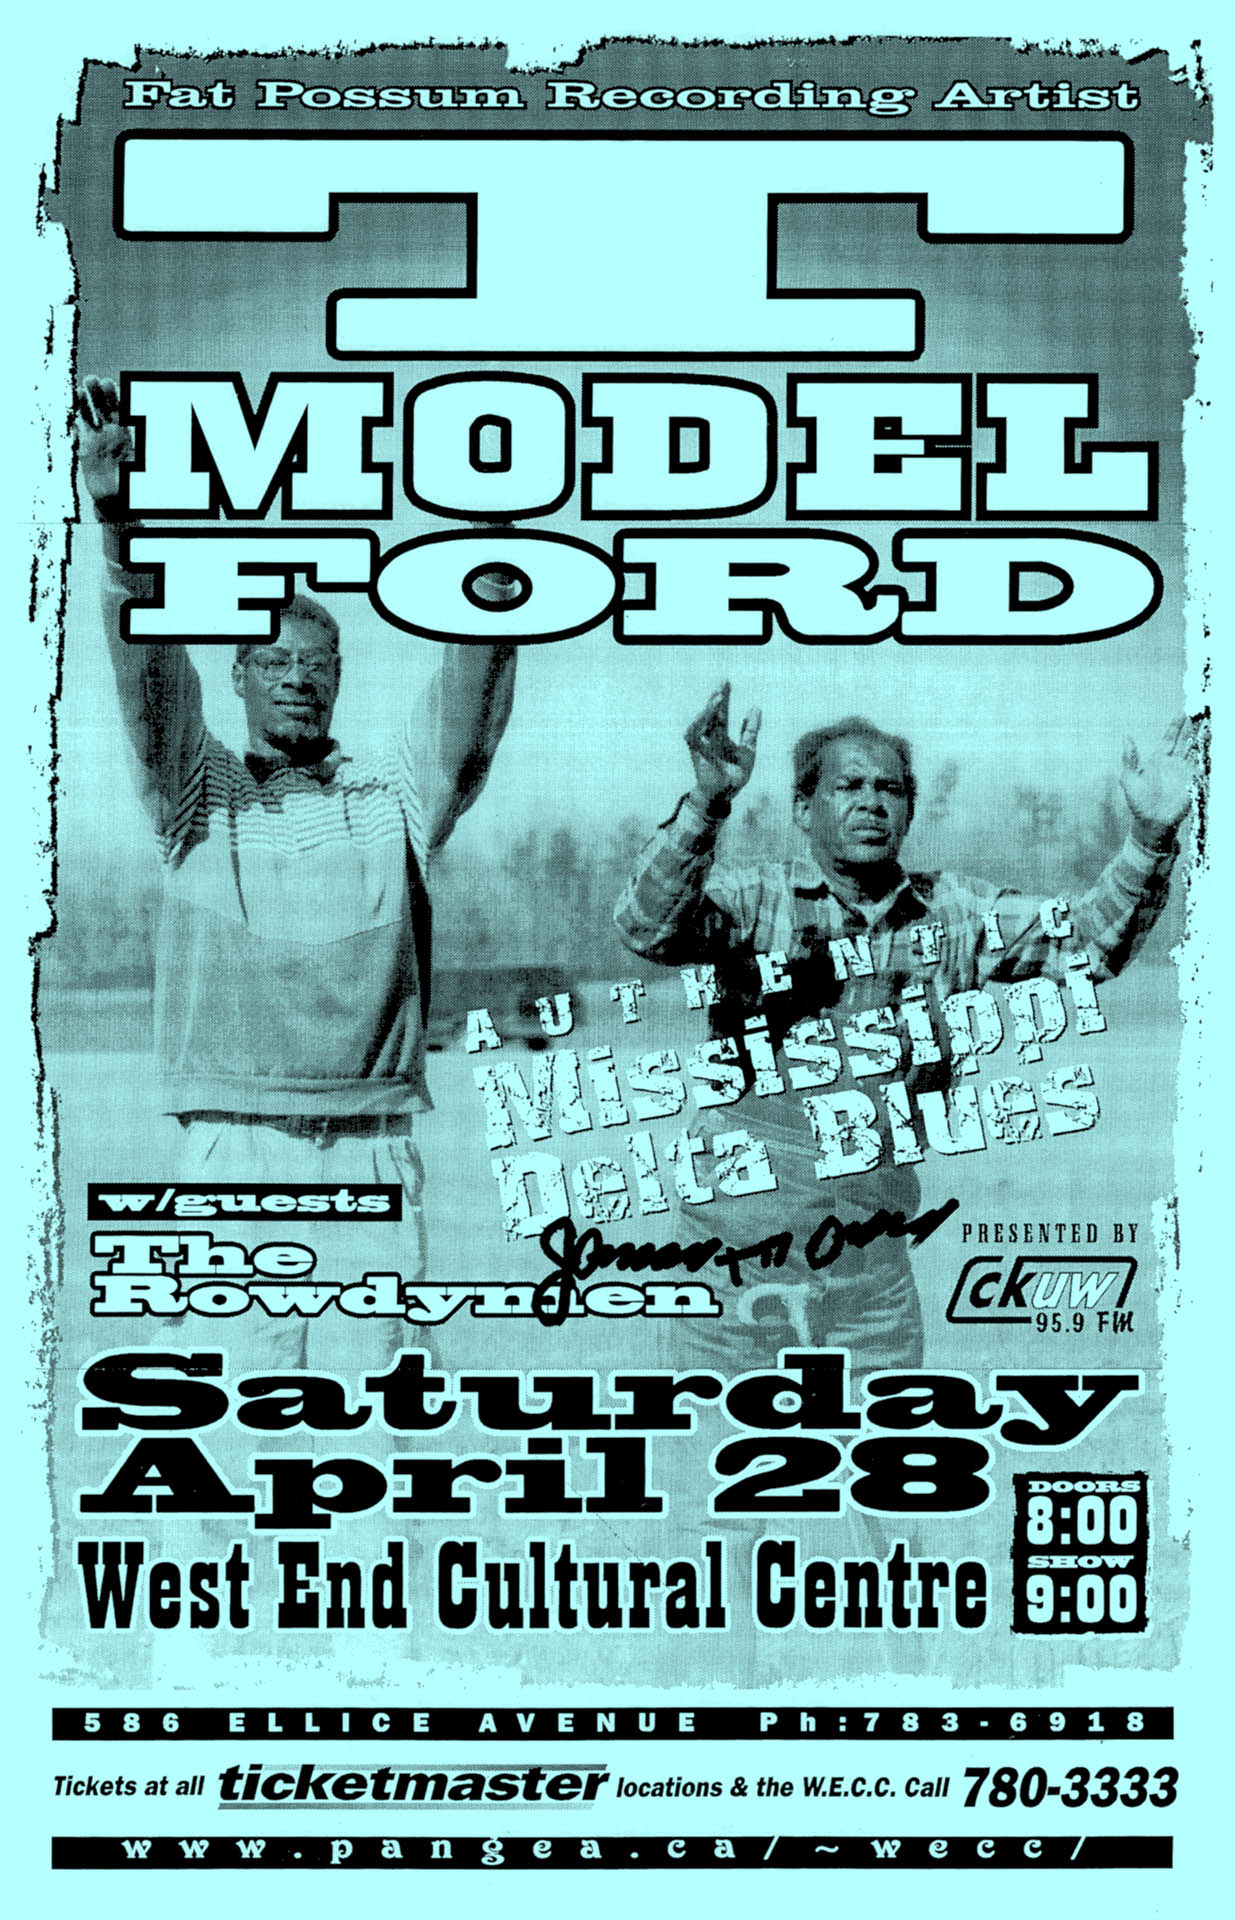 T Model Ford - 2001